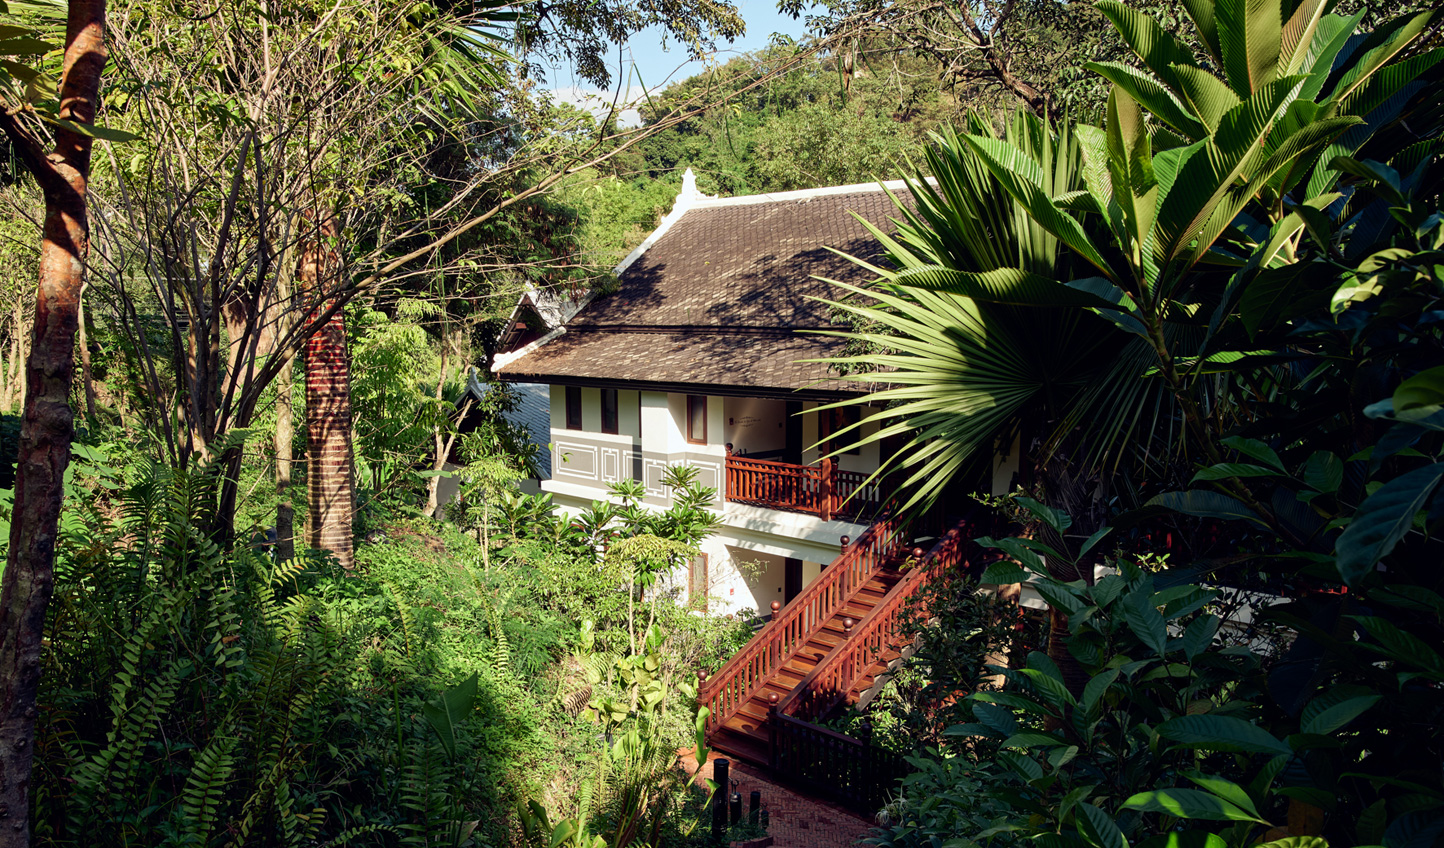 Each of the 23 rooms, suites and villas lie ensconced in lush jungle